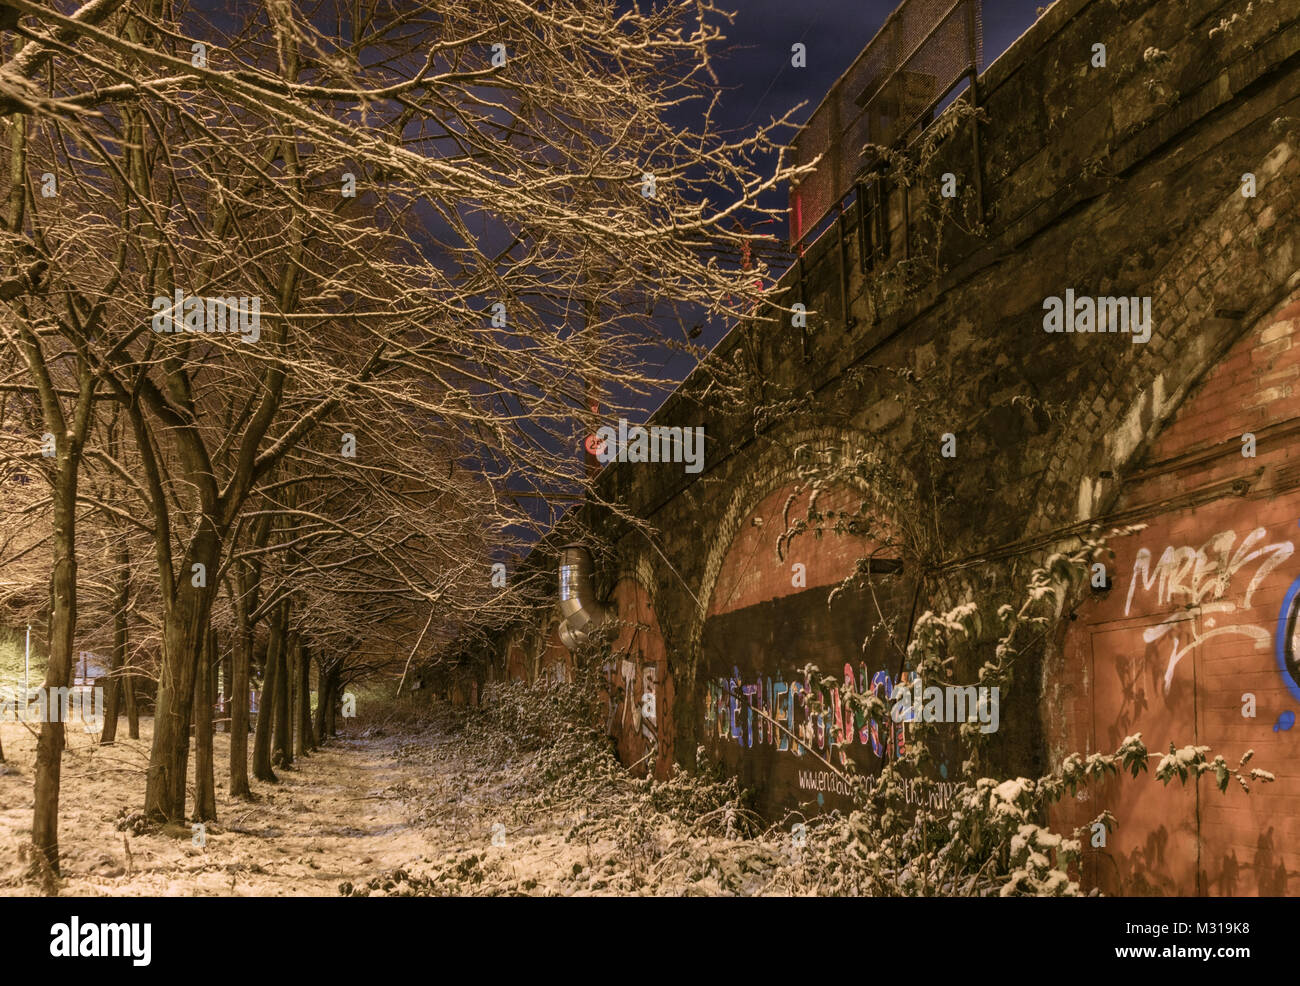 A snow covered line of trees beside railway arches becomes a dramatic landscape at night in Glasgow, Scotland, UK. - Stock Image